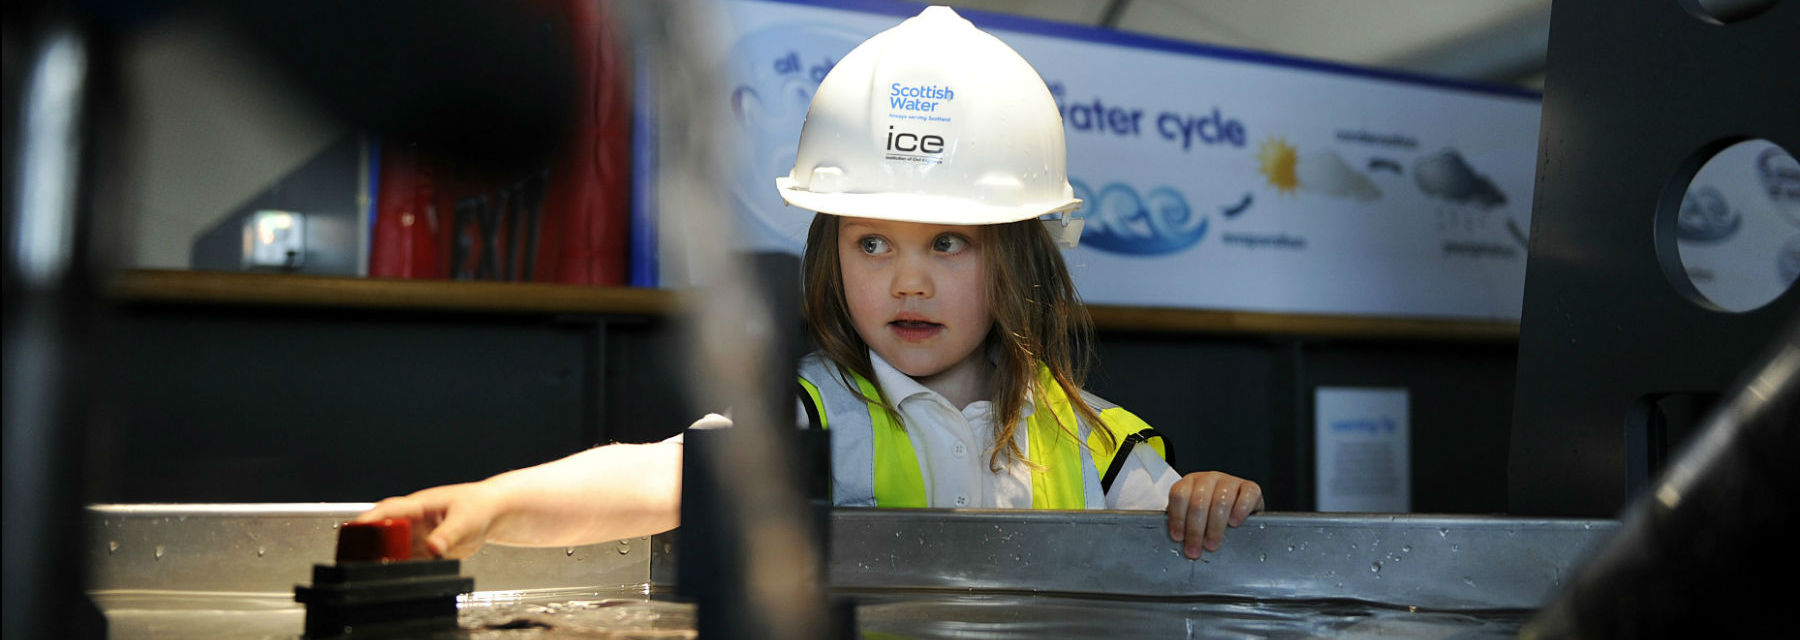 A girl wearing a helmet and high vis vest plays at a water exhibit